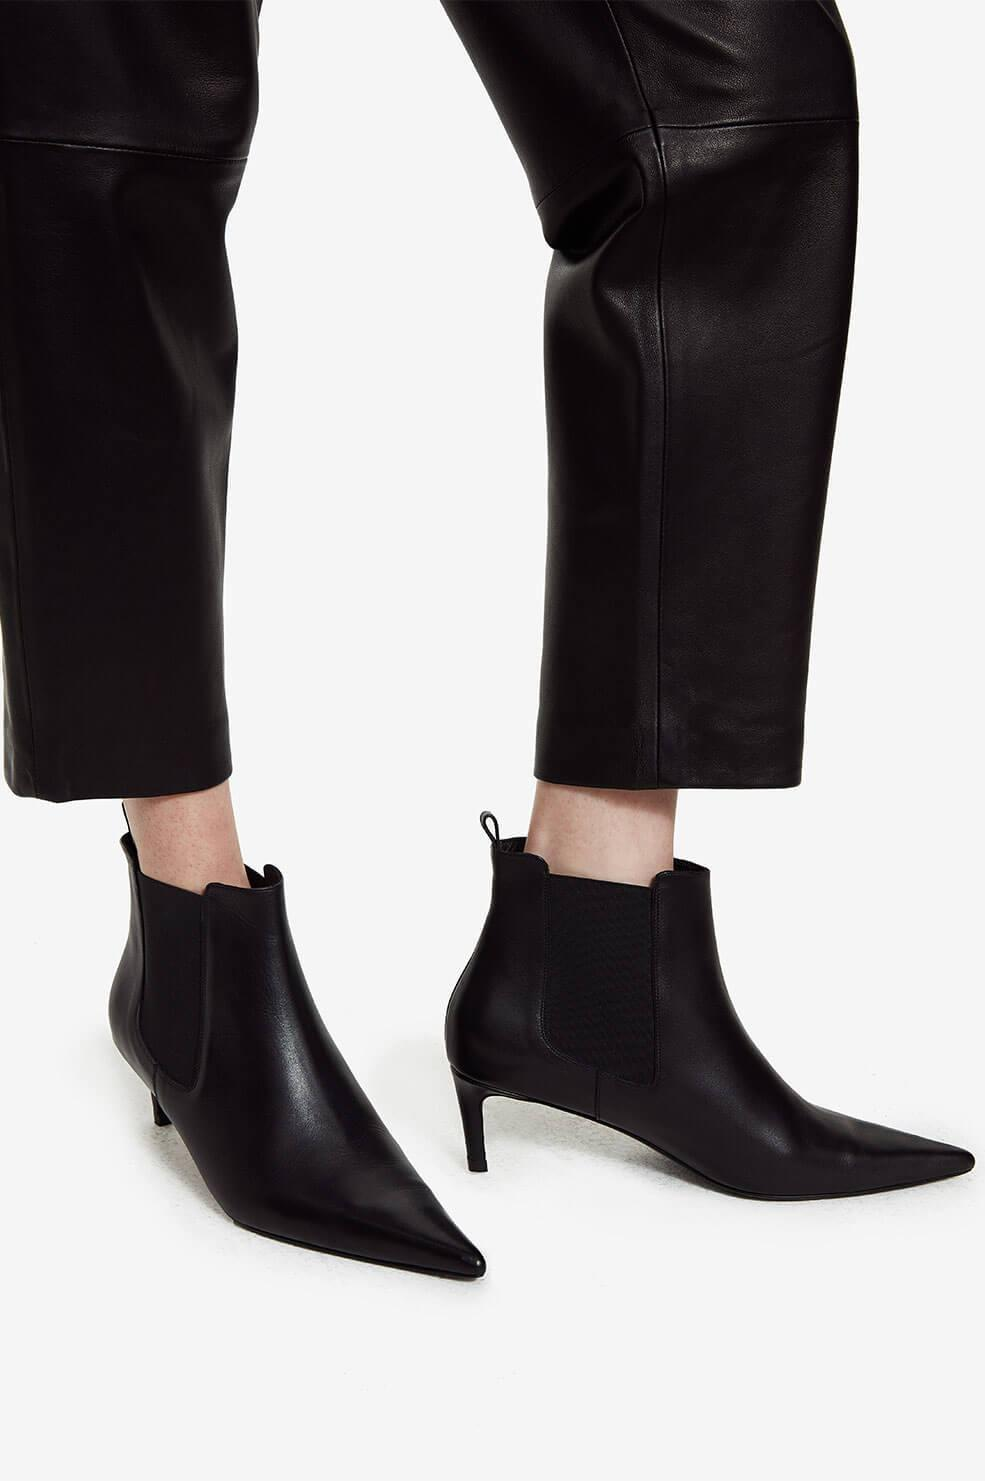 Stevie Boots - Black Leather 6